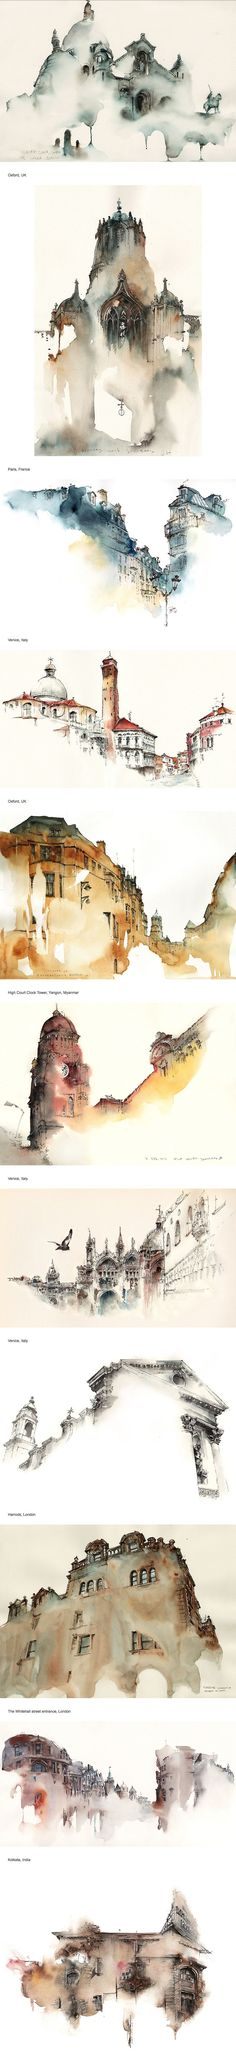 Elusive Architecture in Watercolors of Korean Artist Sunga Park WOW NICE WORK. Elusive Architecture in Watercolors of Korean Artist Sunga Park Art Et Architecture, Watercolor Architecture, Illustration Art, Illustrations, Korean Artist, Art Graphique, Urban Sketching, Amazing Art, Watercolor Art